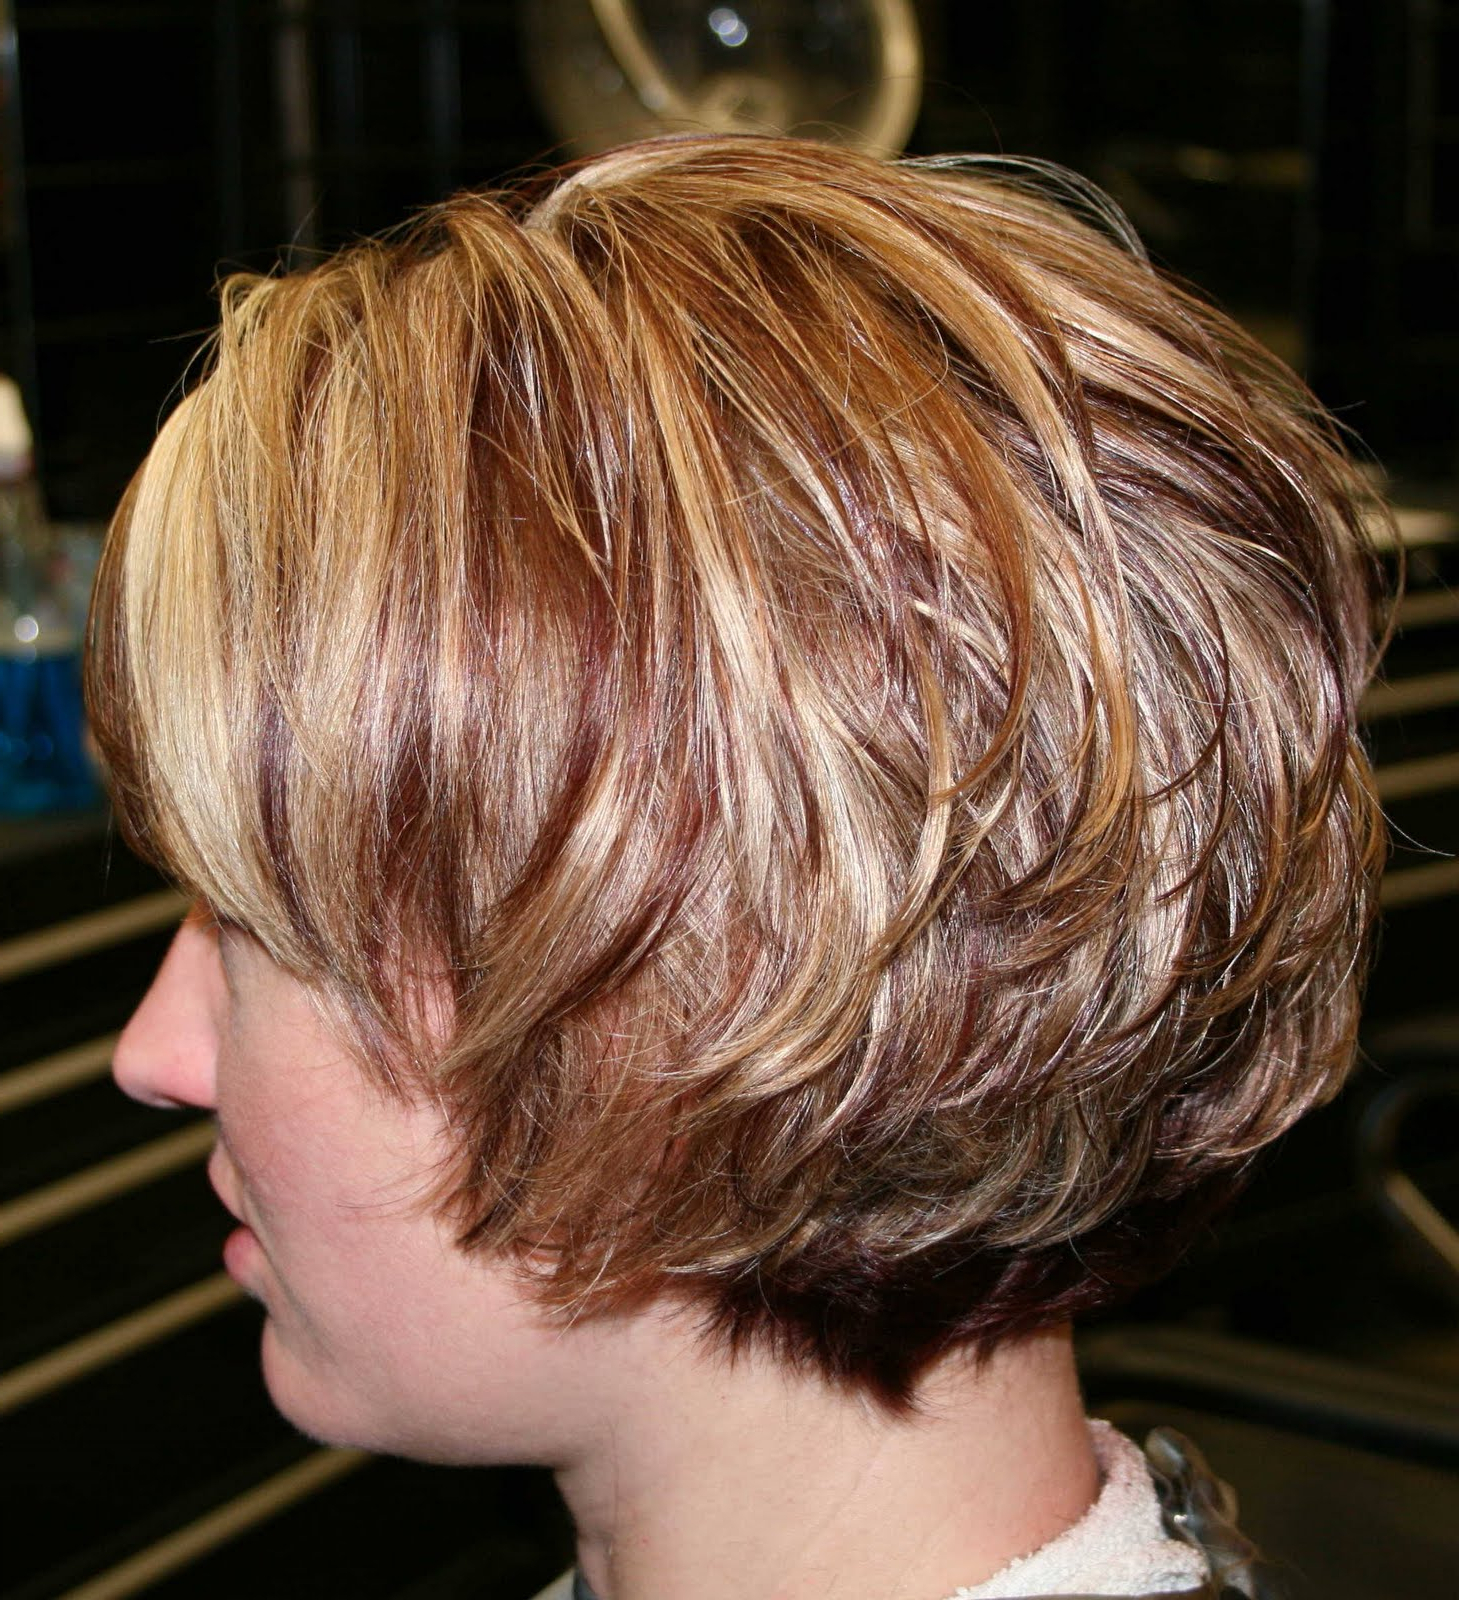 Short Curly Stacked Bob – Hairstyle For Women & Man Intended For Stacked Curly Bob Hairstyles (View 14 of 20)